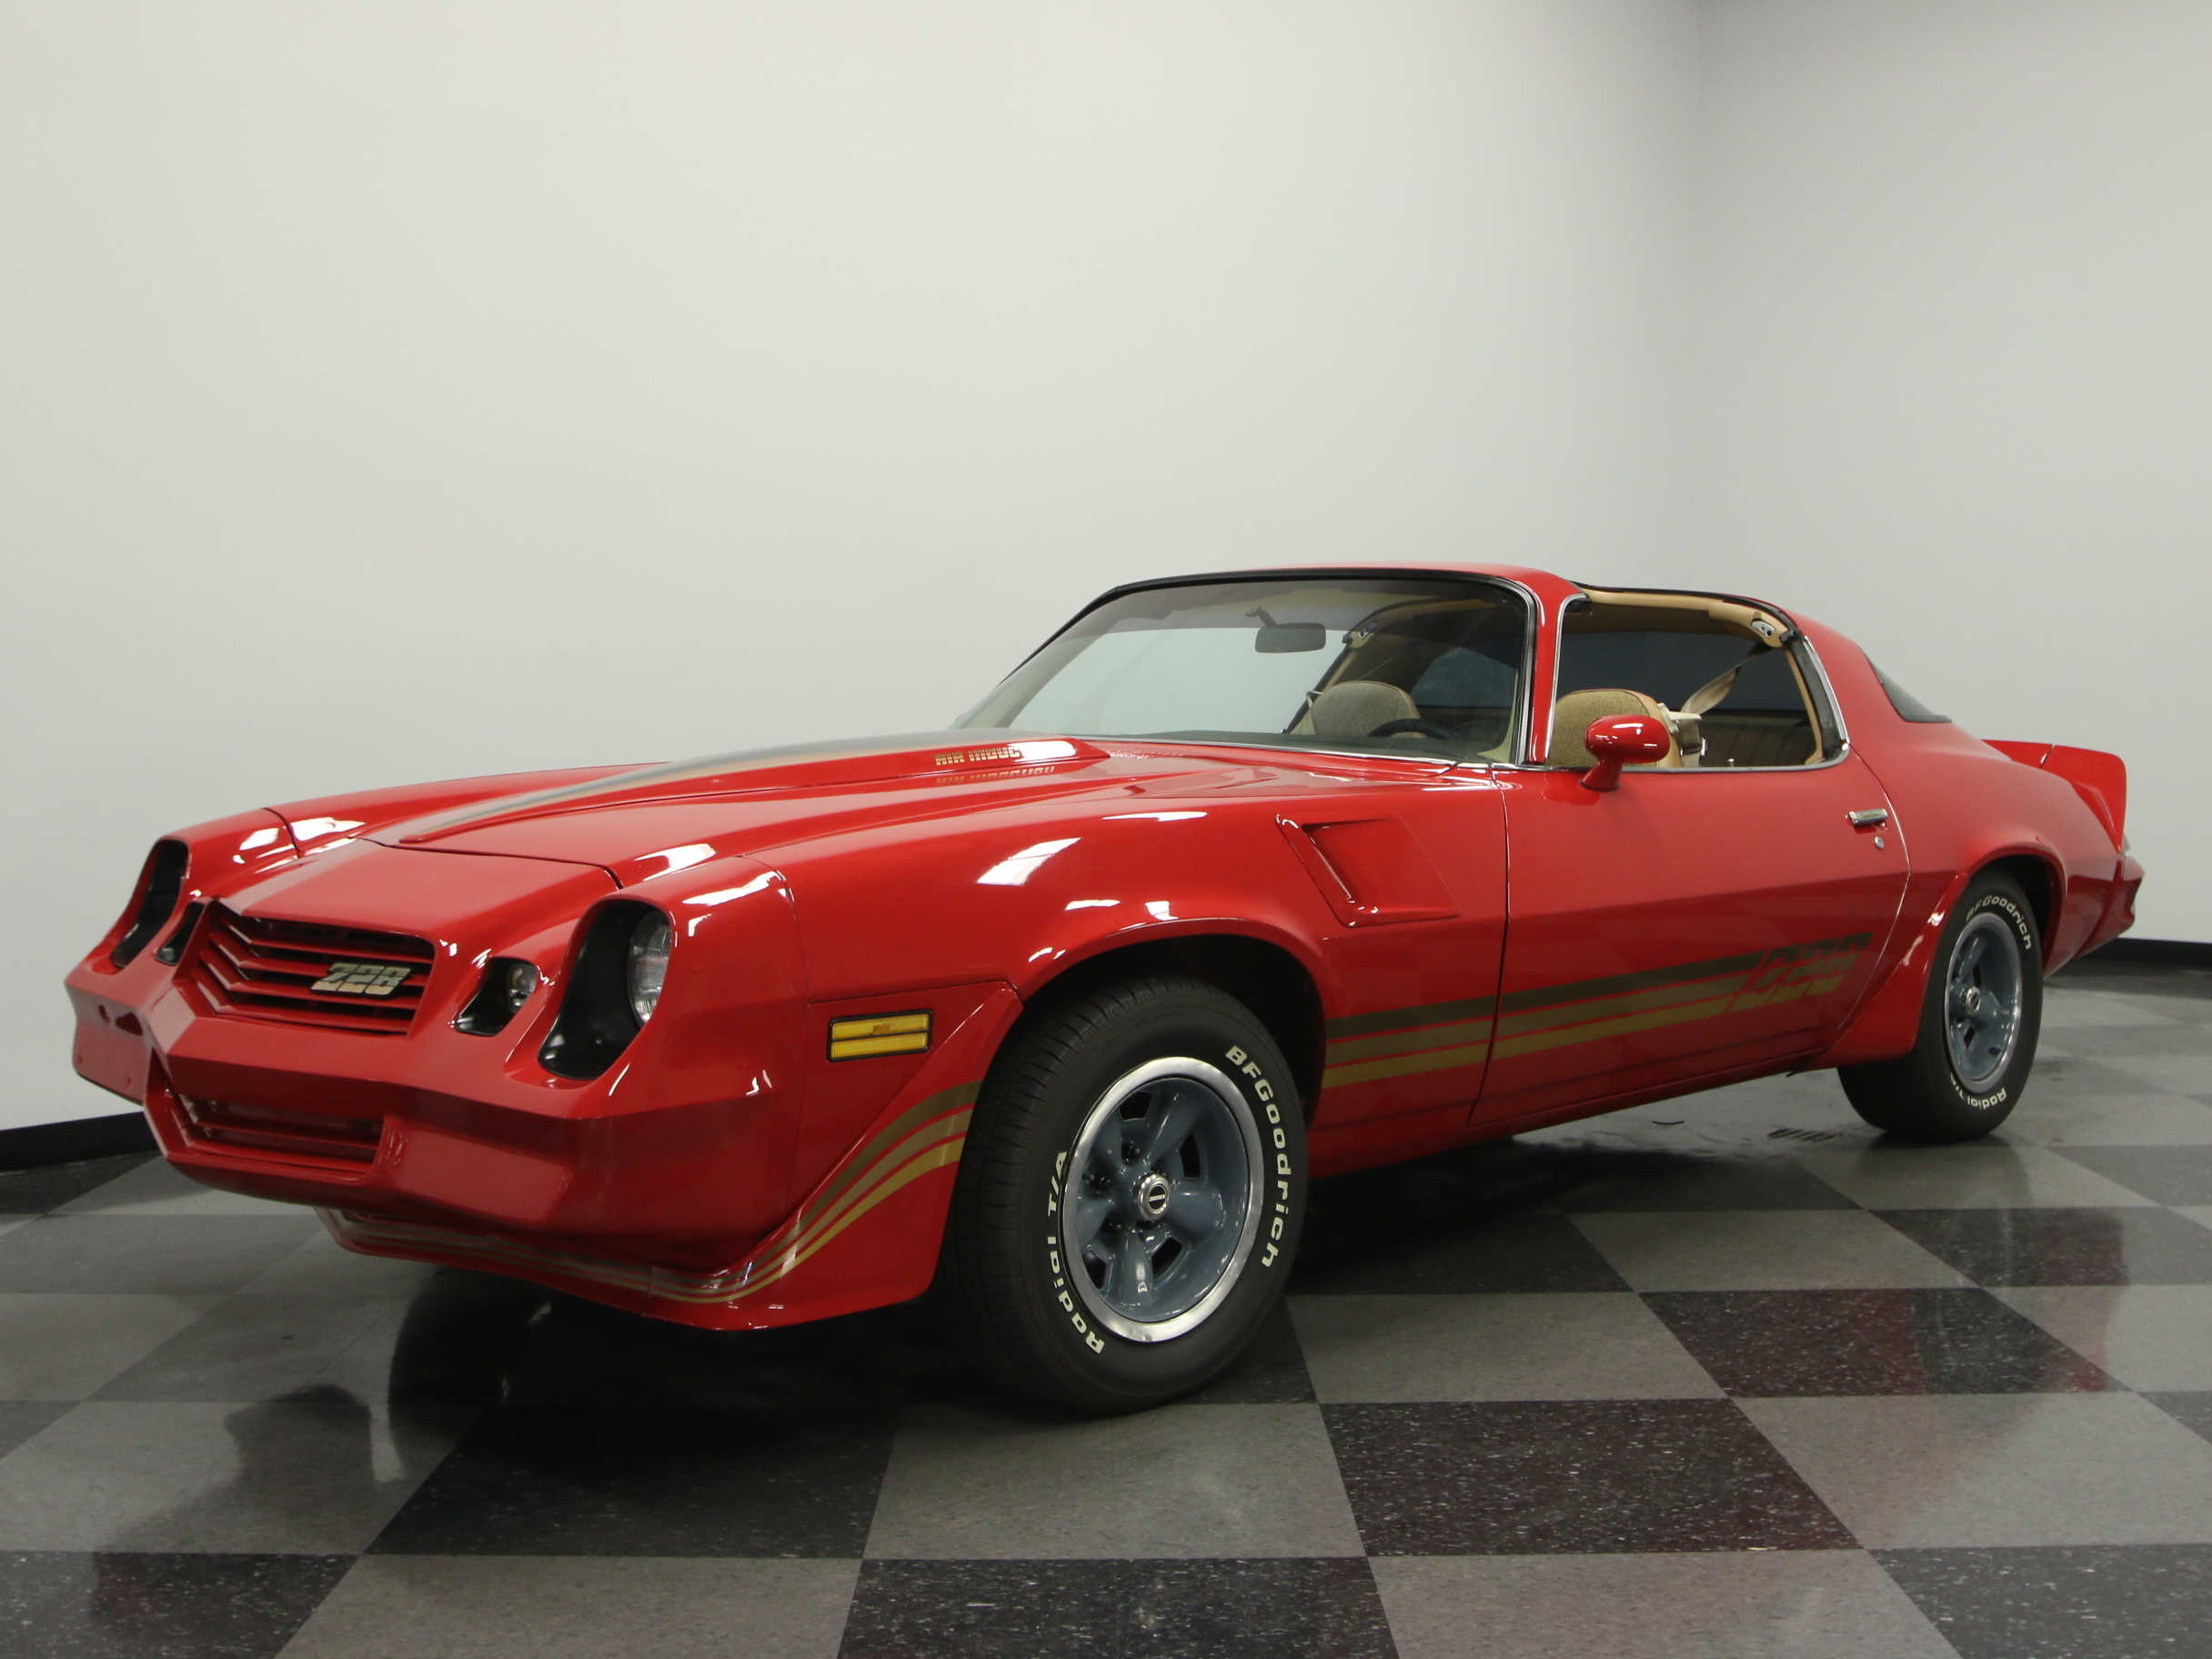 1981 Chevrolet Camaro Streetside Classics The Nation S